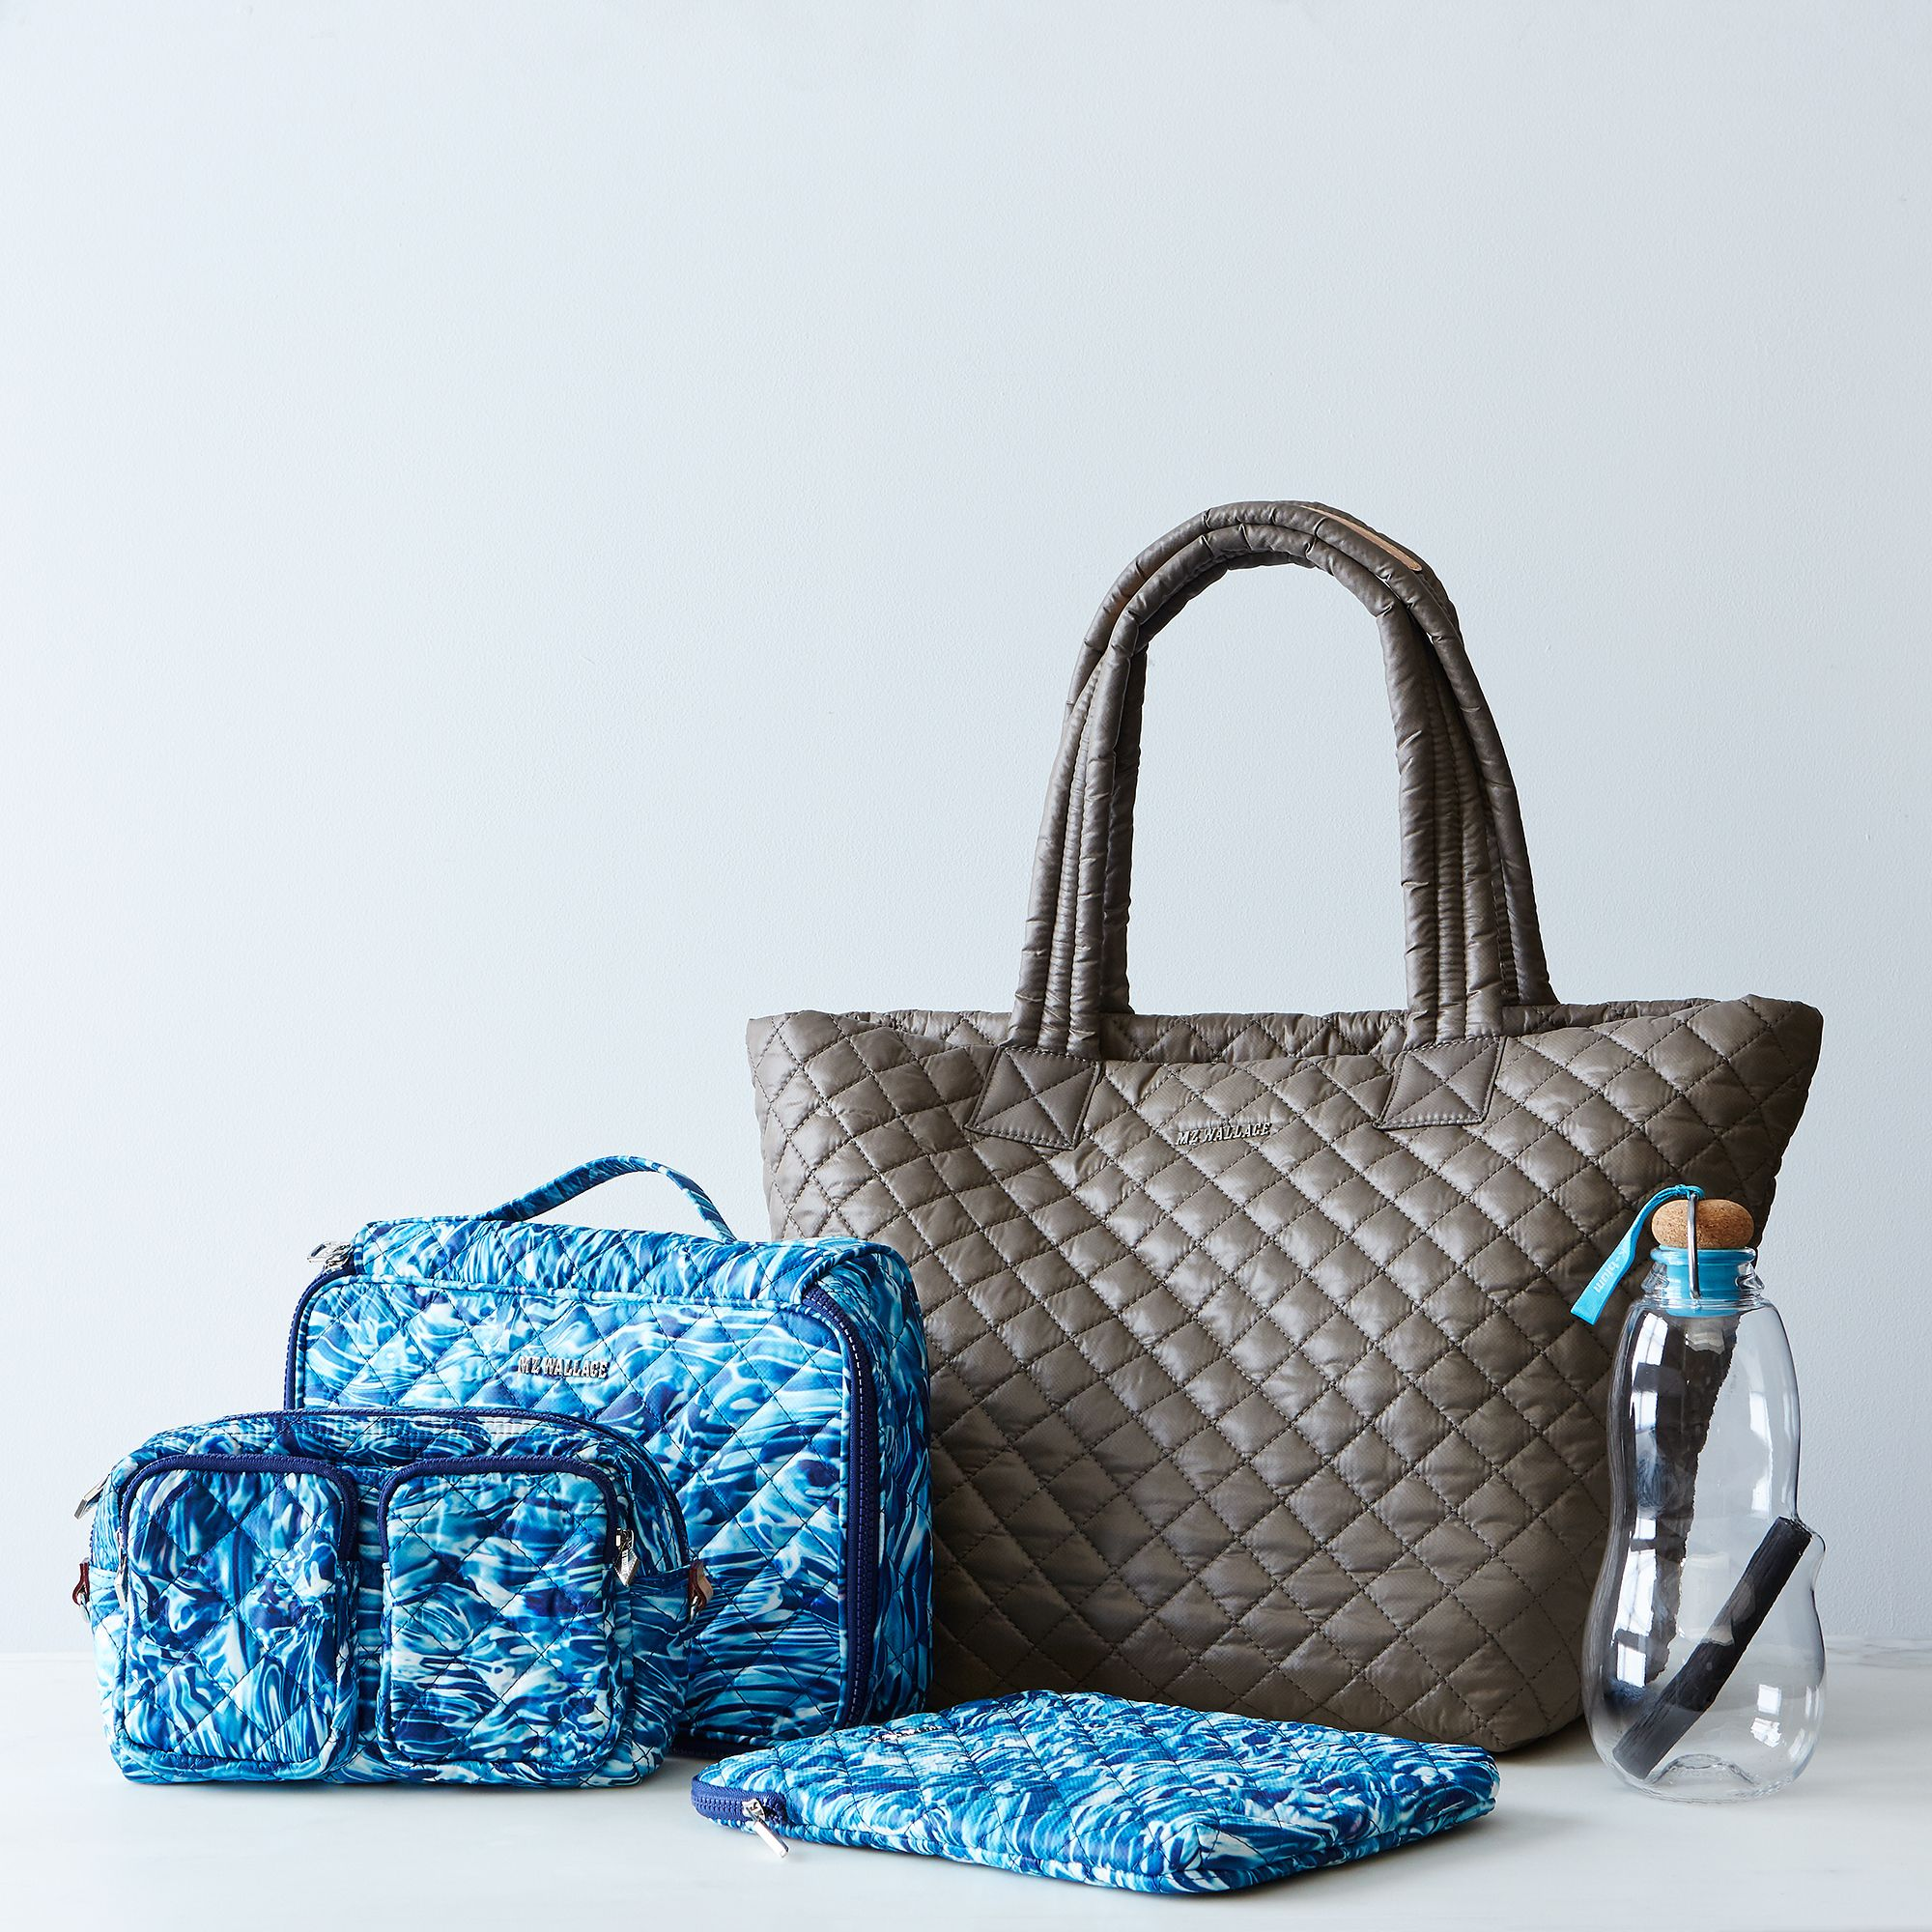 Mz Wallace Food52 Water Print Bags Exclusives On